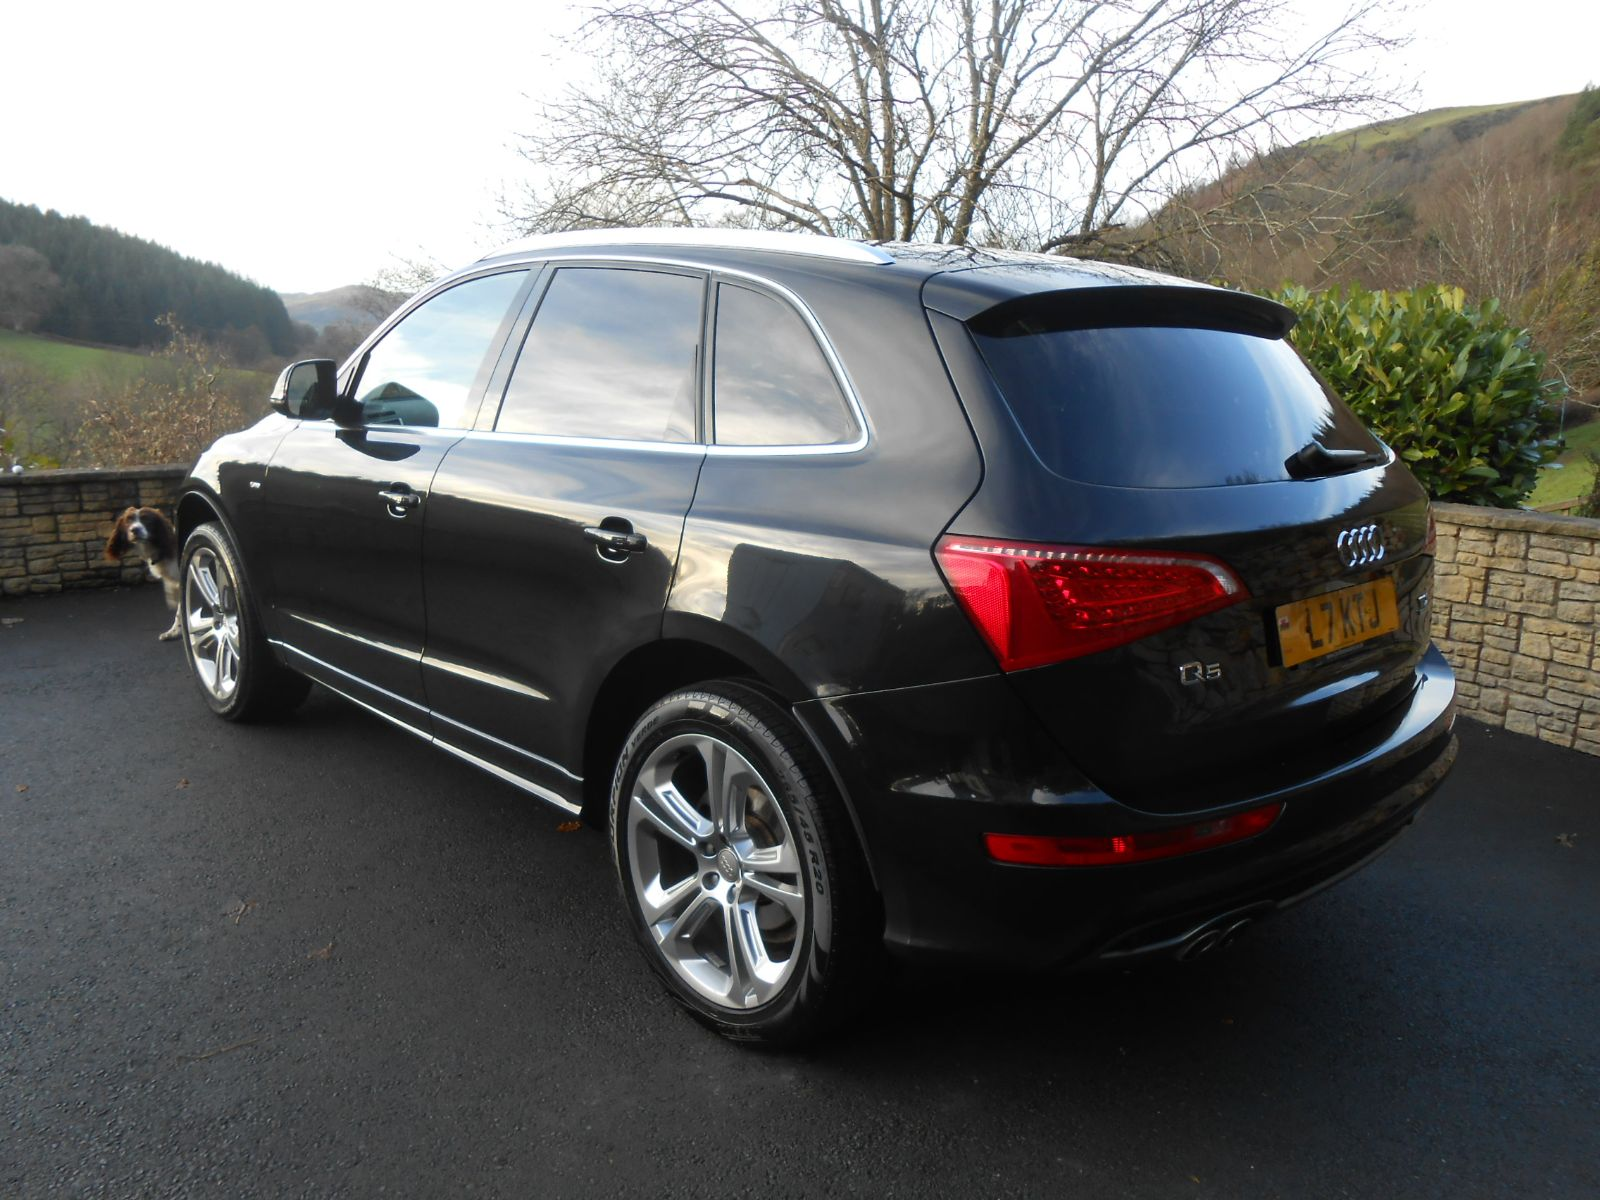 Audi Q5 2.0 TDi 170 S Line Special Edition car for sale Llanidloes Powys Mid Wales Kevin Jones ...